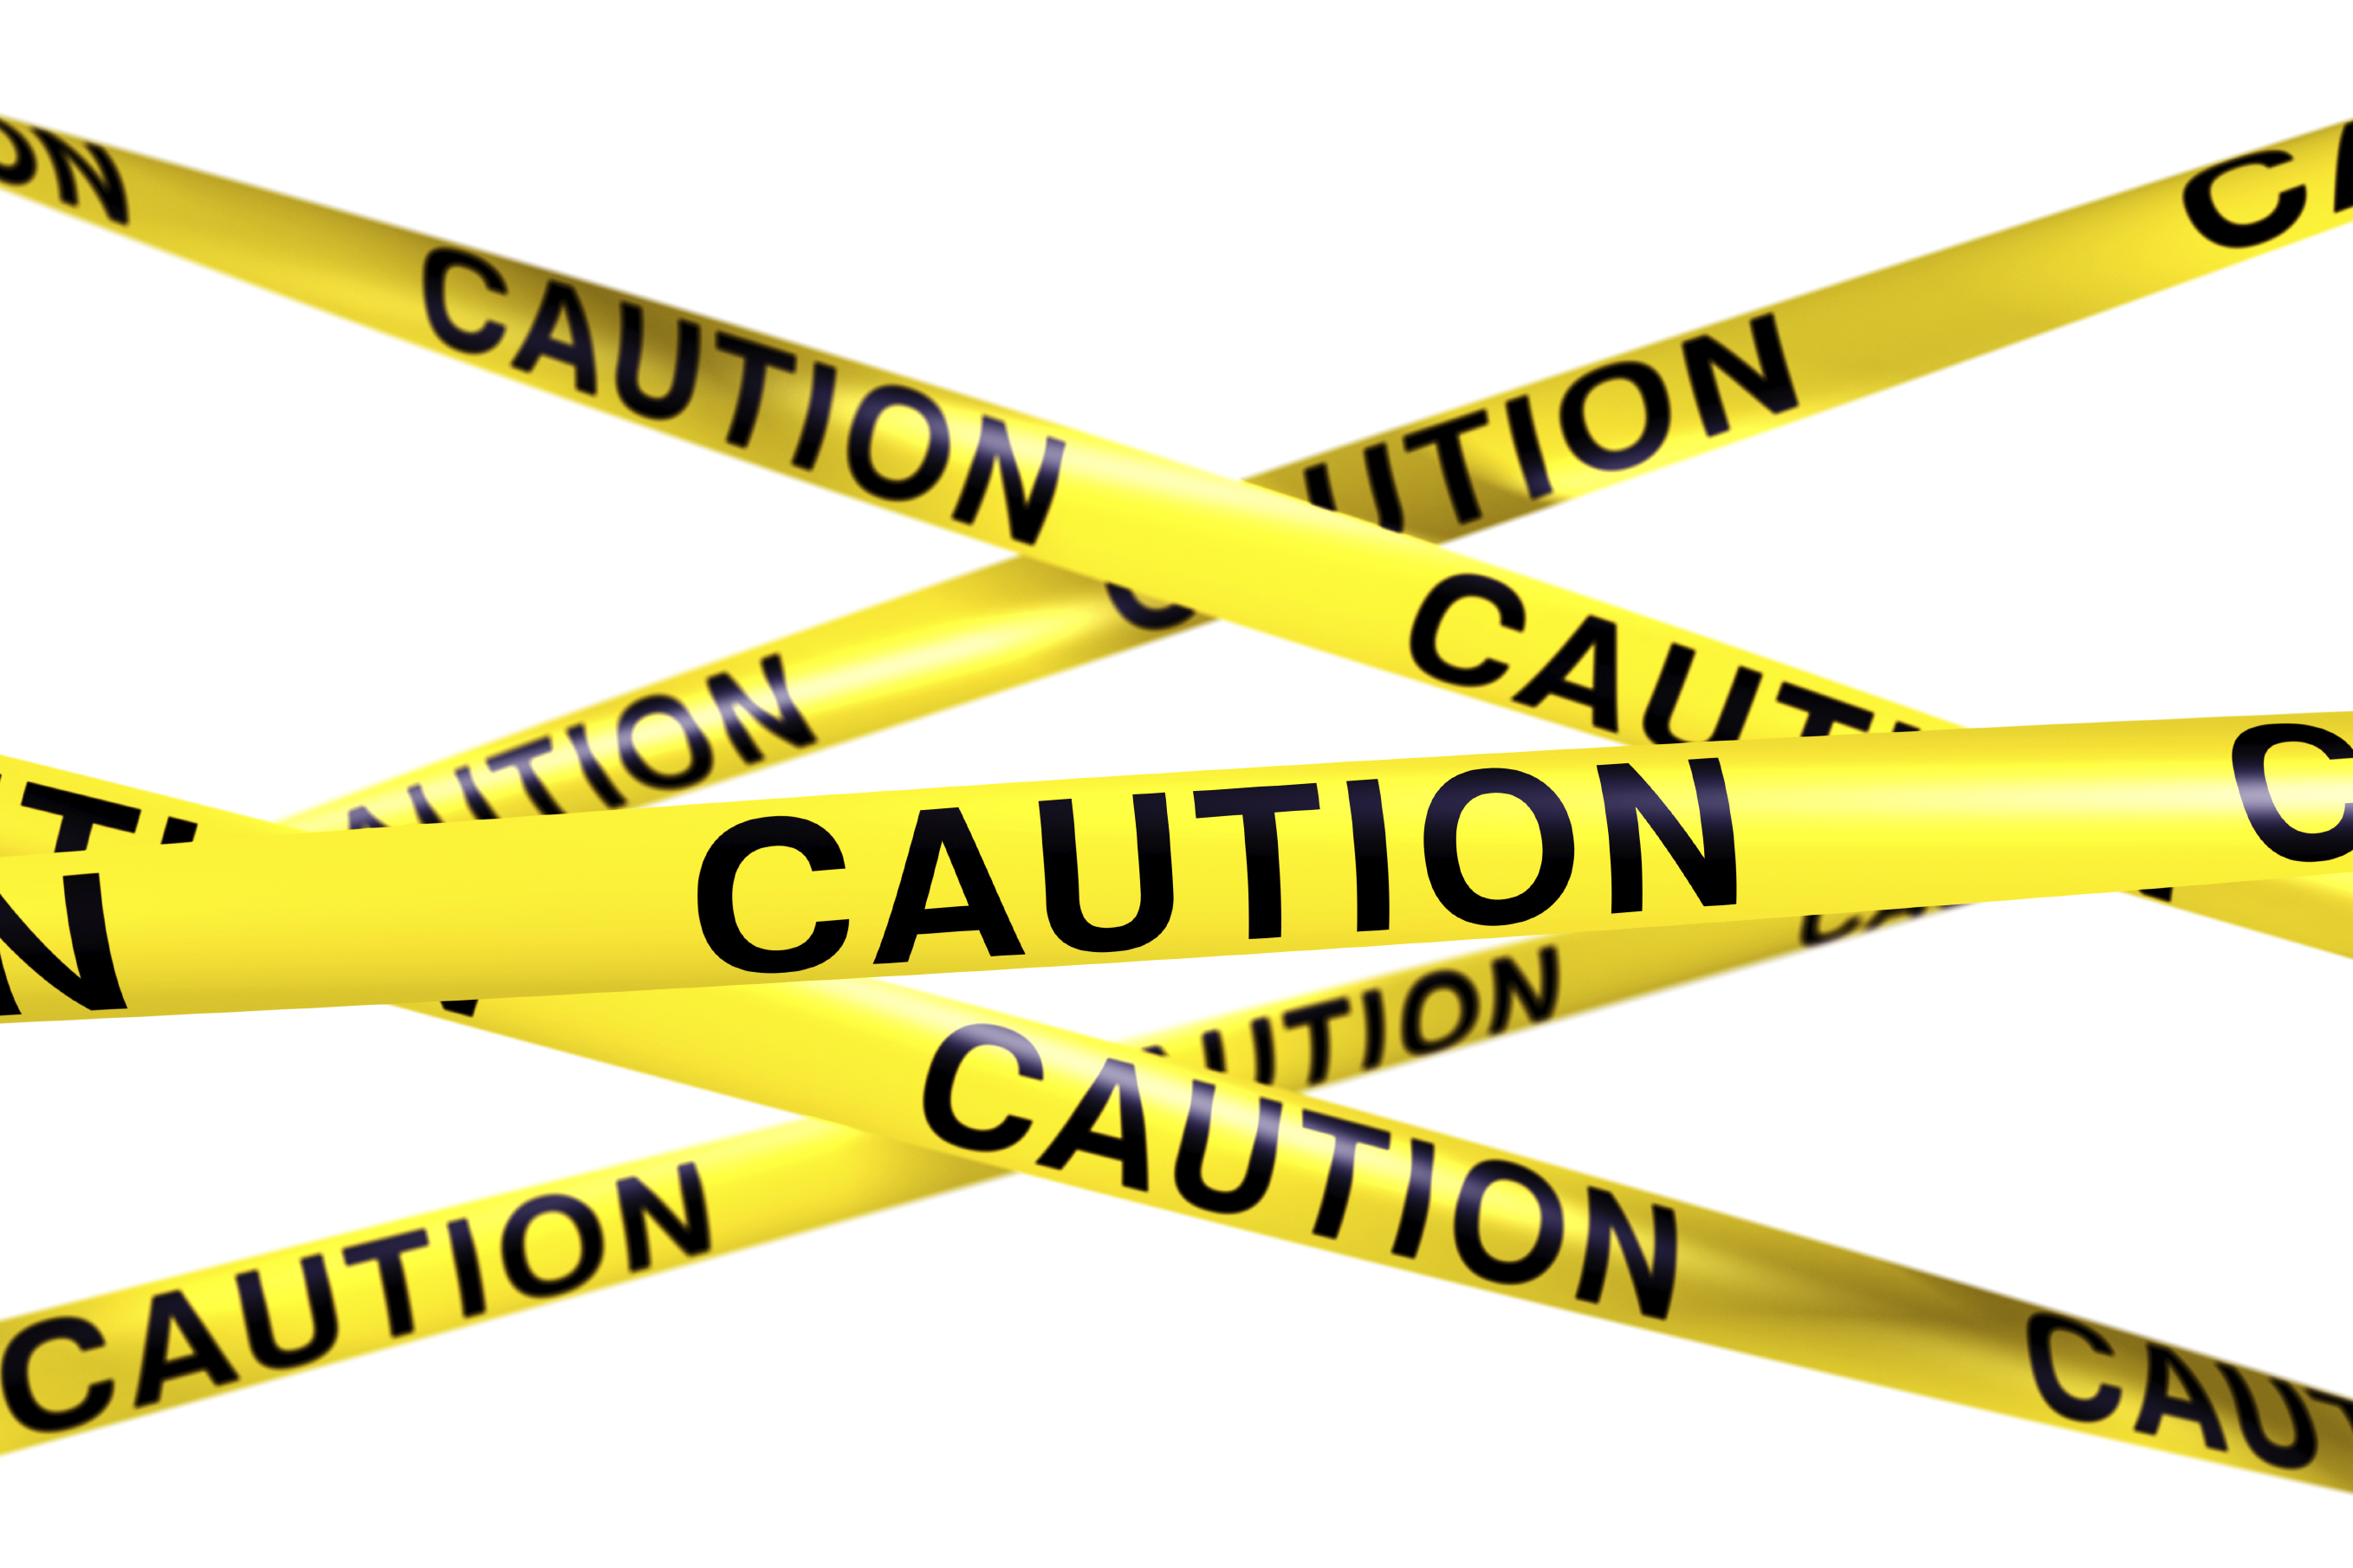 Anchors Away Monday 1132014 moreover Caution Tape additionally Grunge Metal Plano De Fondo Negro 12131812 as well Caution Crime Scene Clipart besides Gifts For Everyone Else C 33. on tape clip art